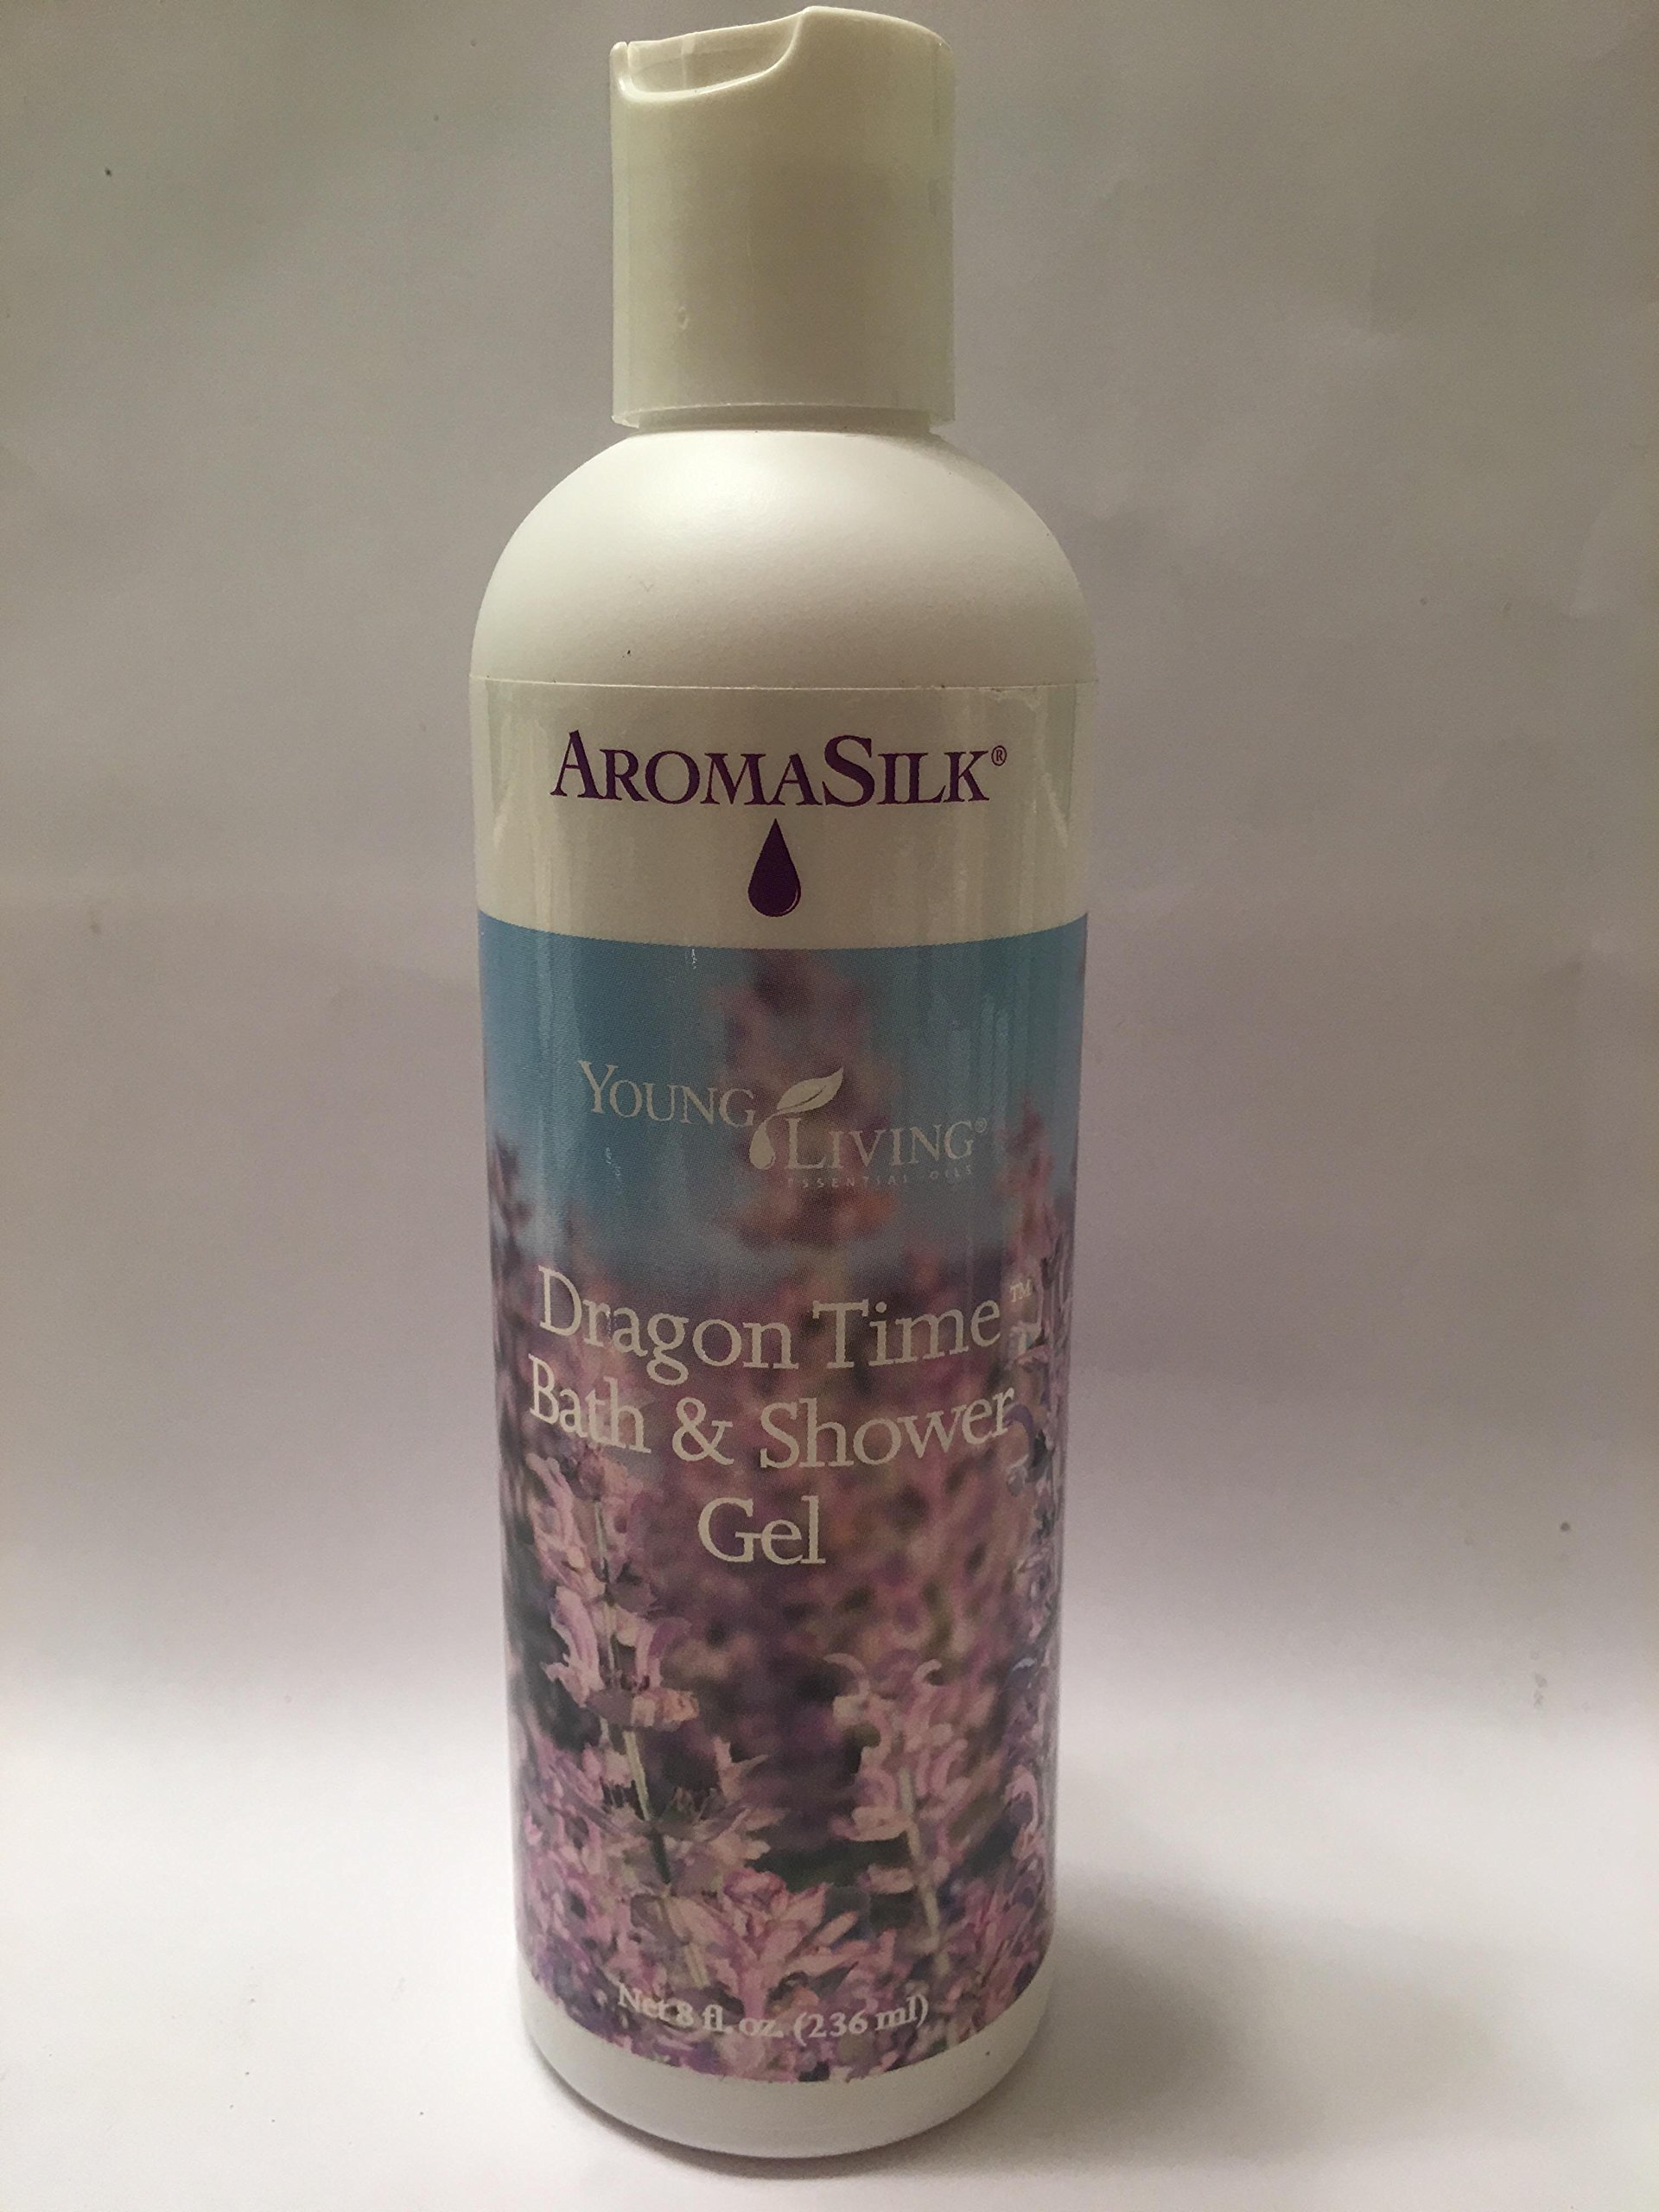 Dragon Time Bath & Shower Gel - 8 oz by Young Living Essential Oils